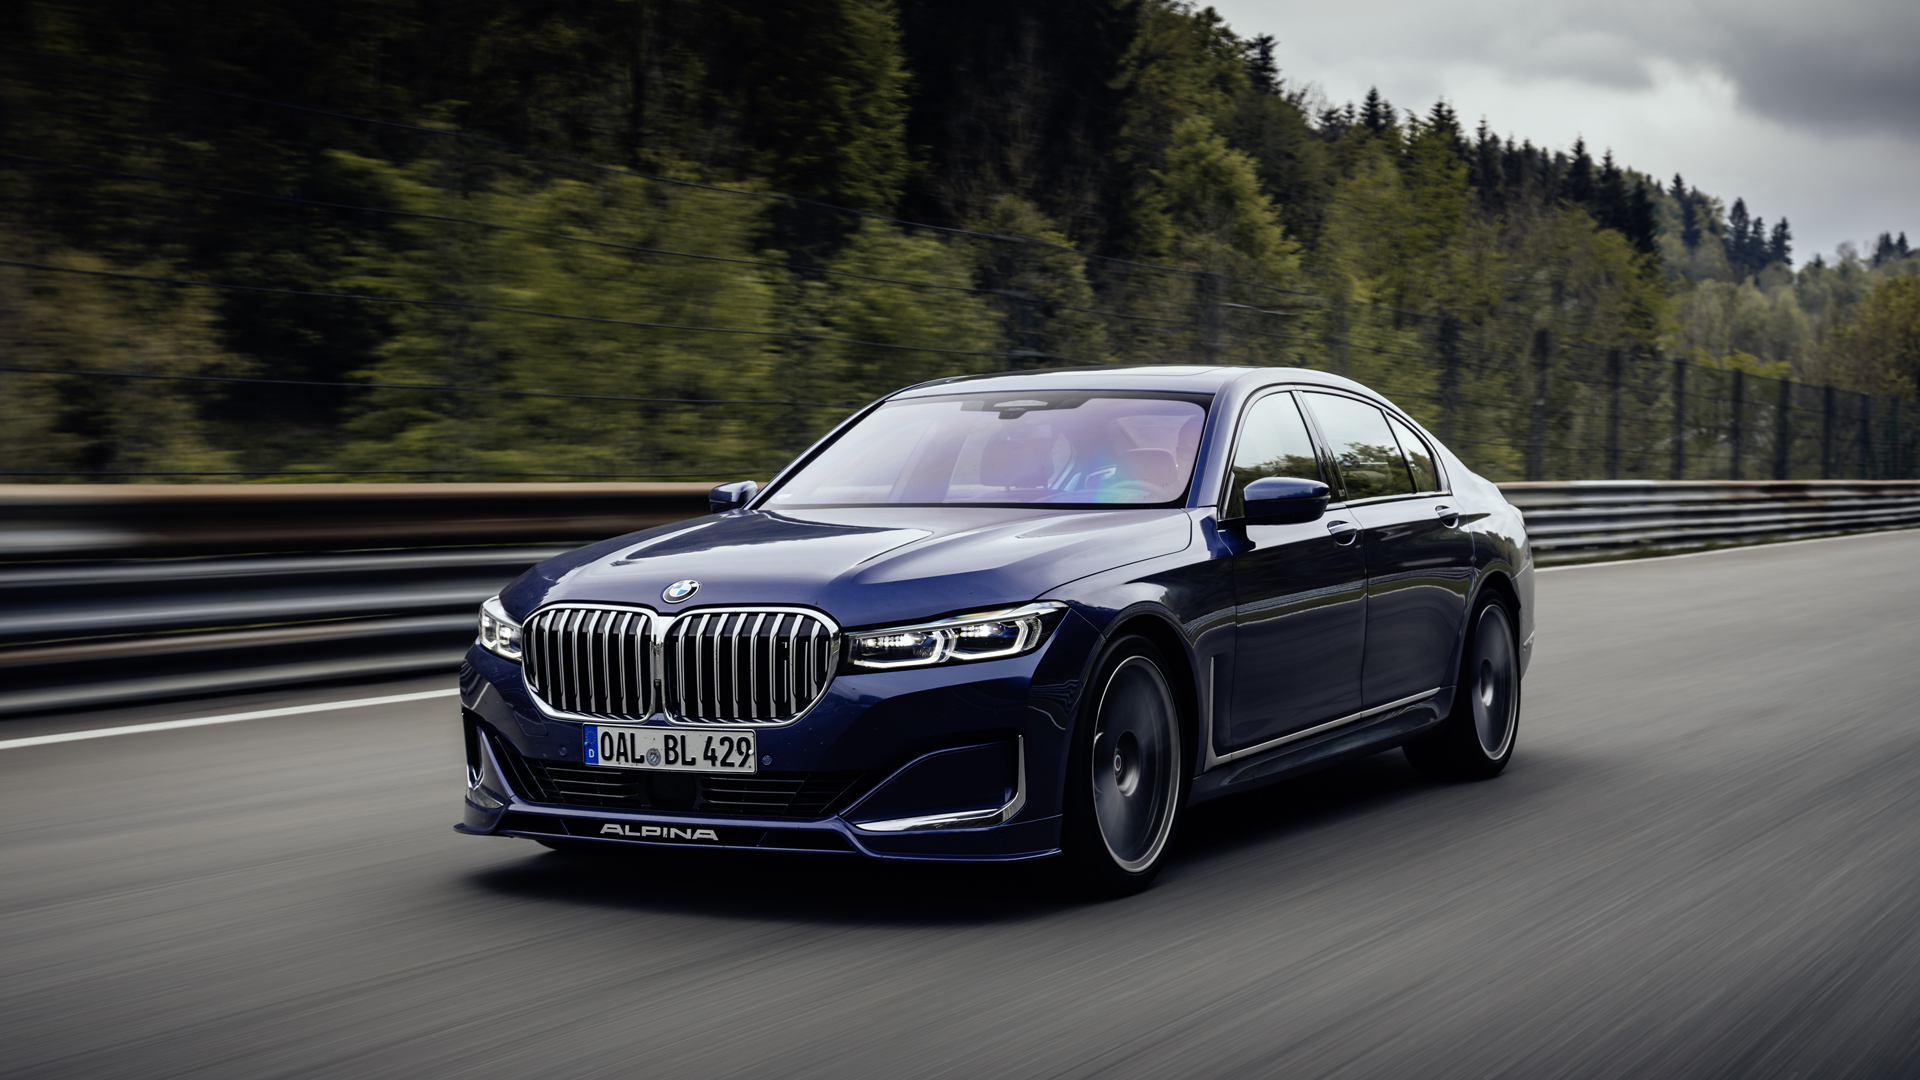 Certified Pre Owned Bmw >> 2020 Alpina B7 Review | What's new, performance, BMW 7 Series | Autoblog